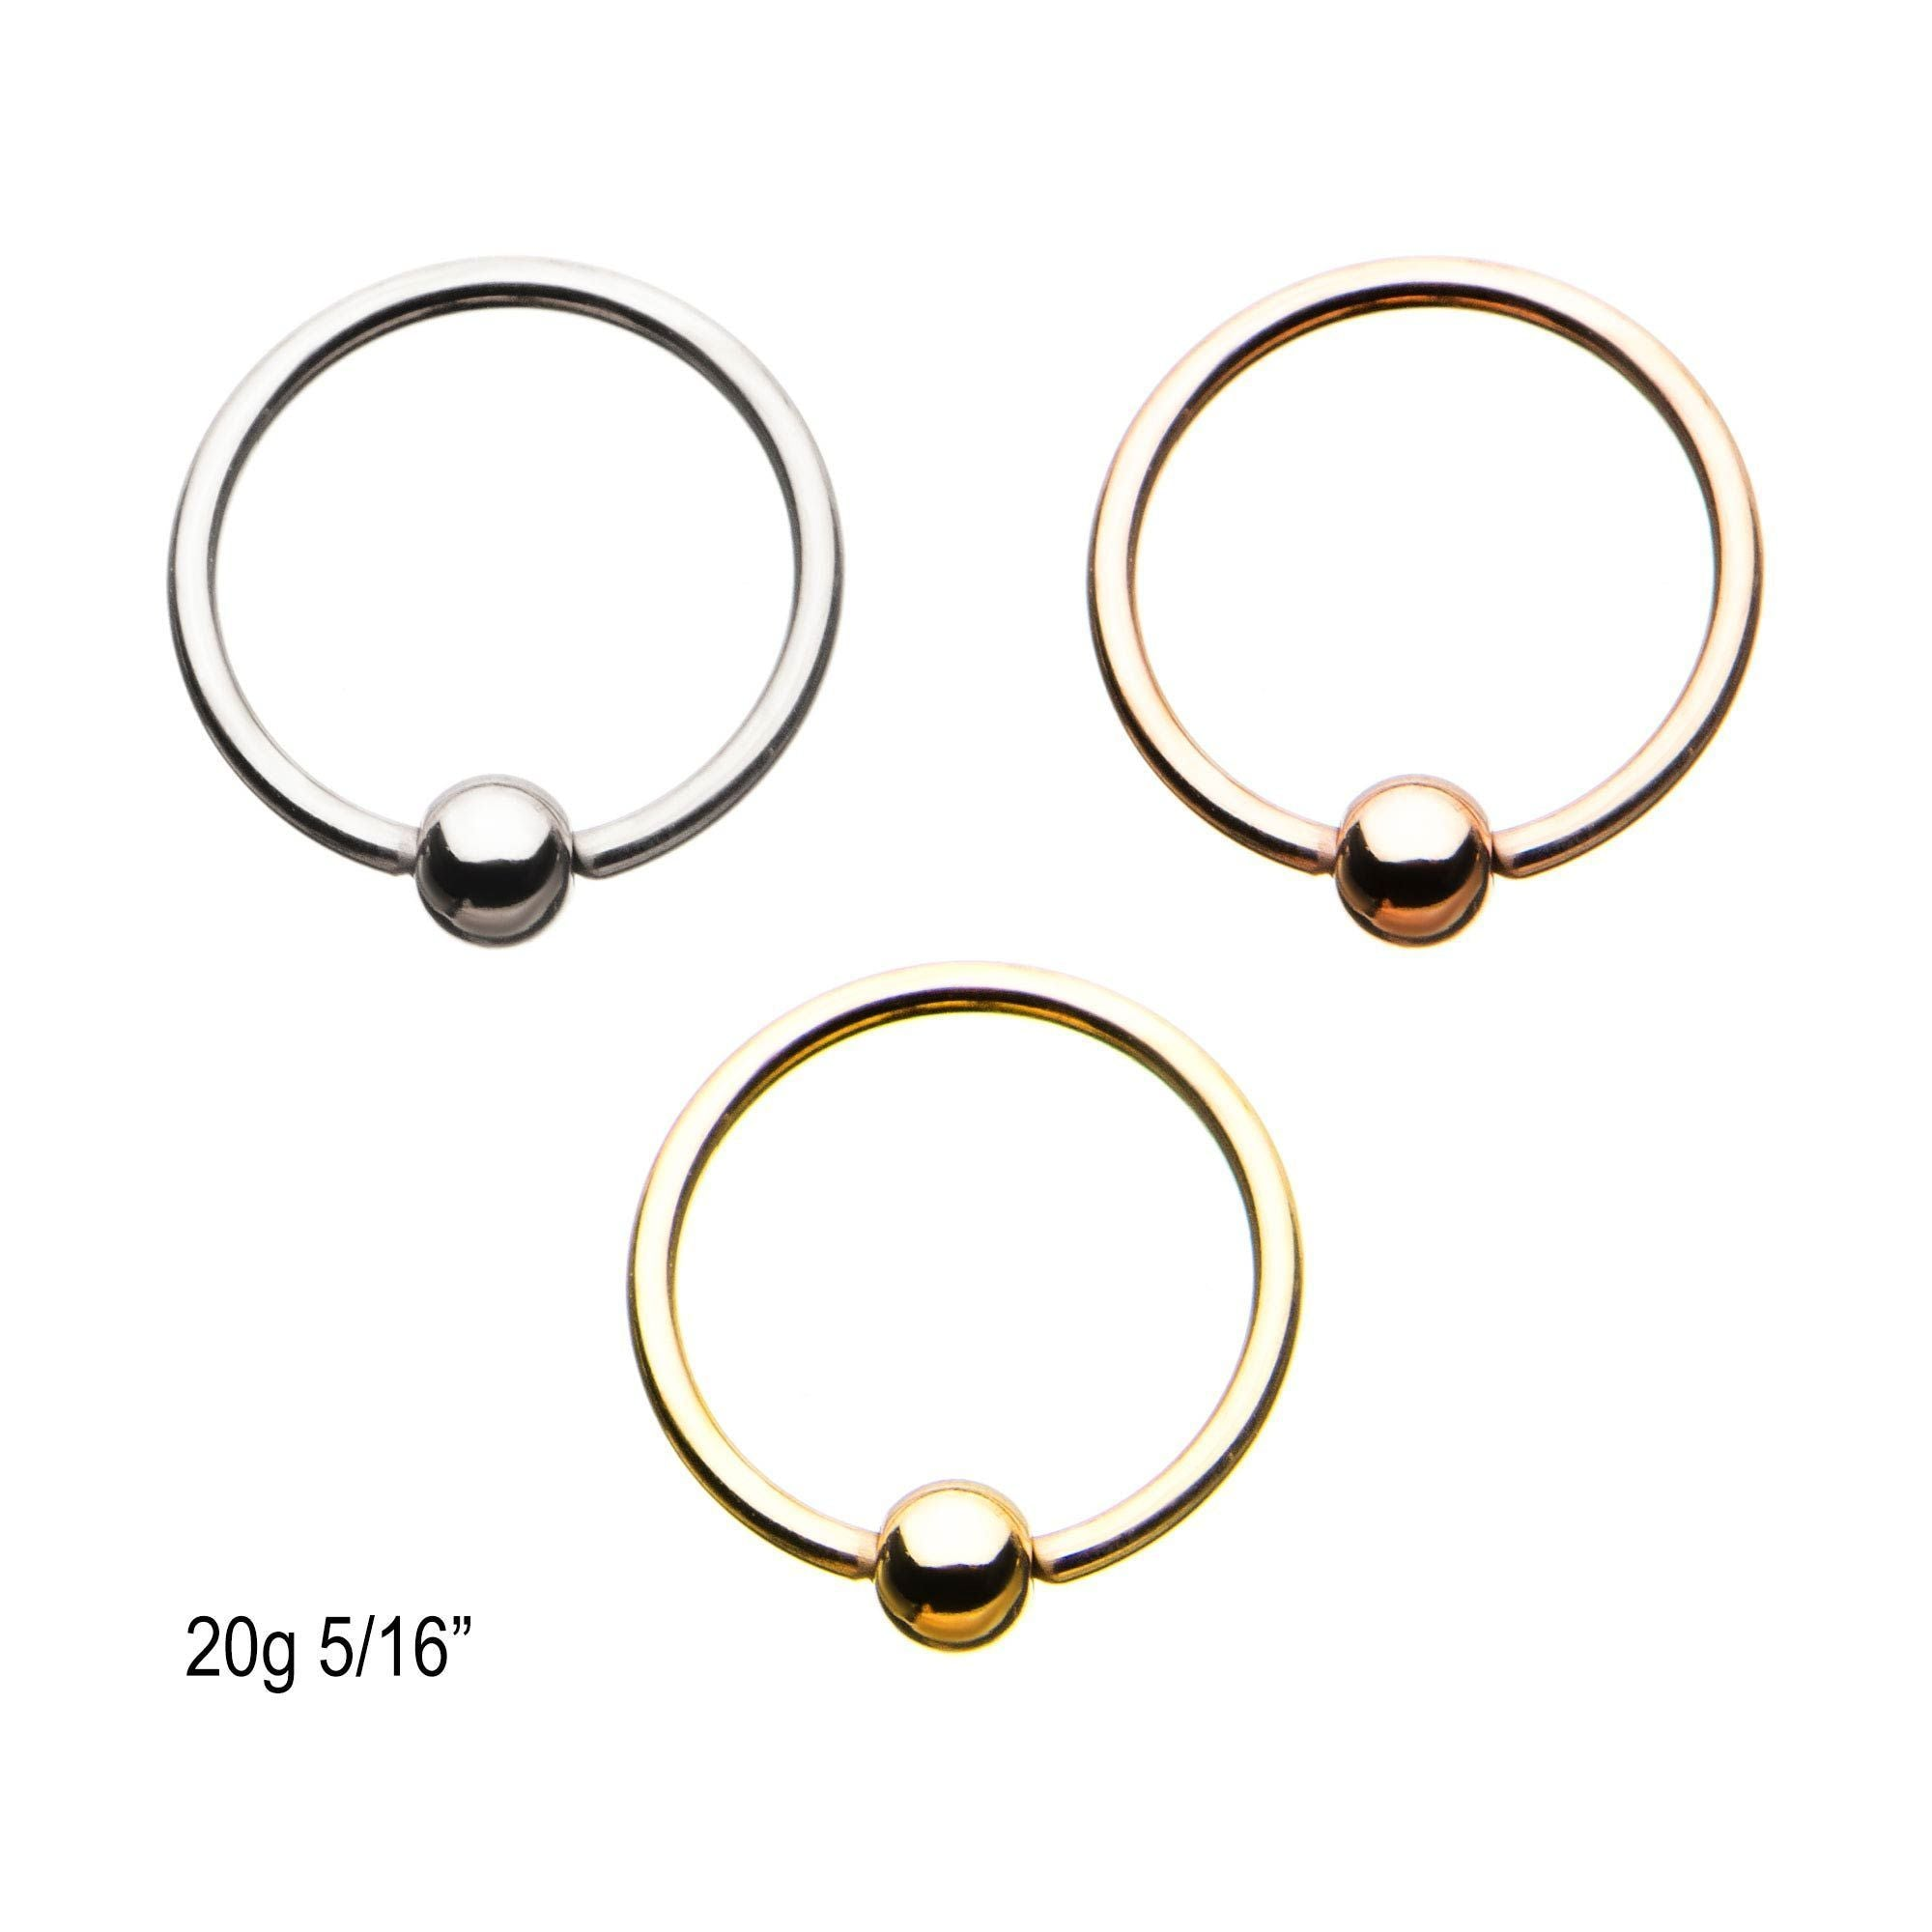 20g 5 16 Surgical Steel Attach Ball Ring Captive Bead Rings